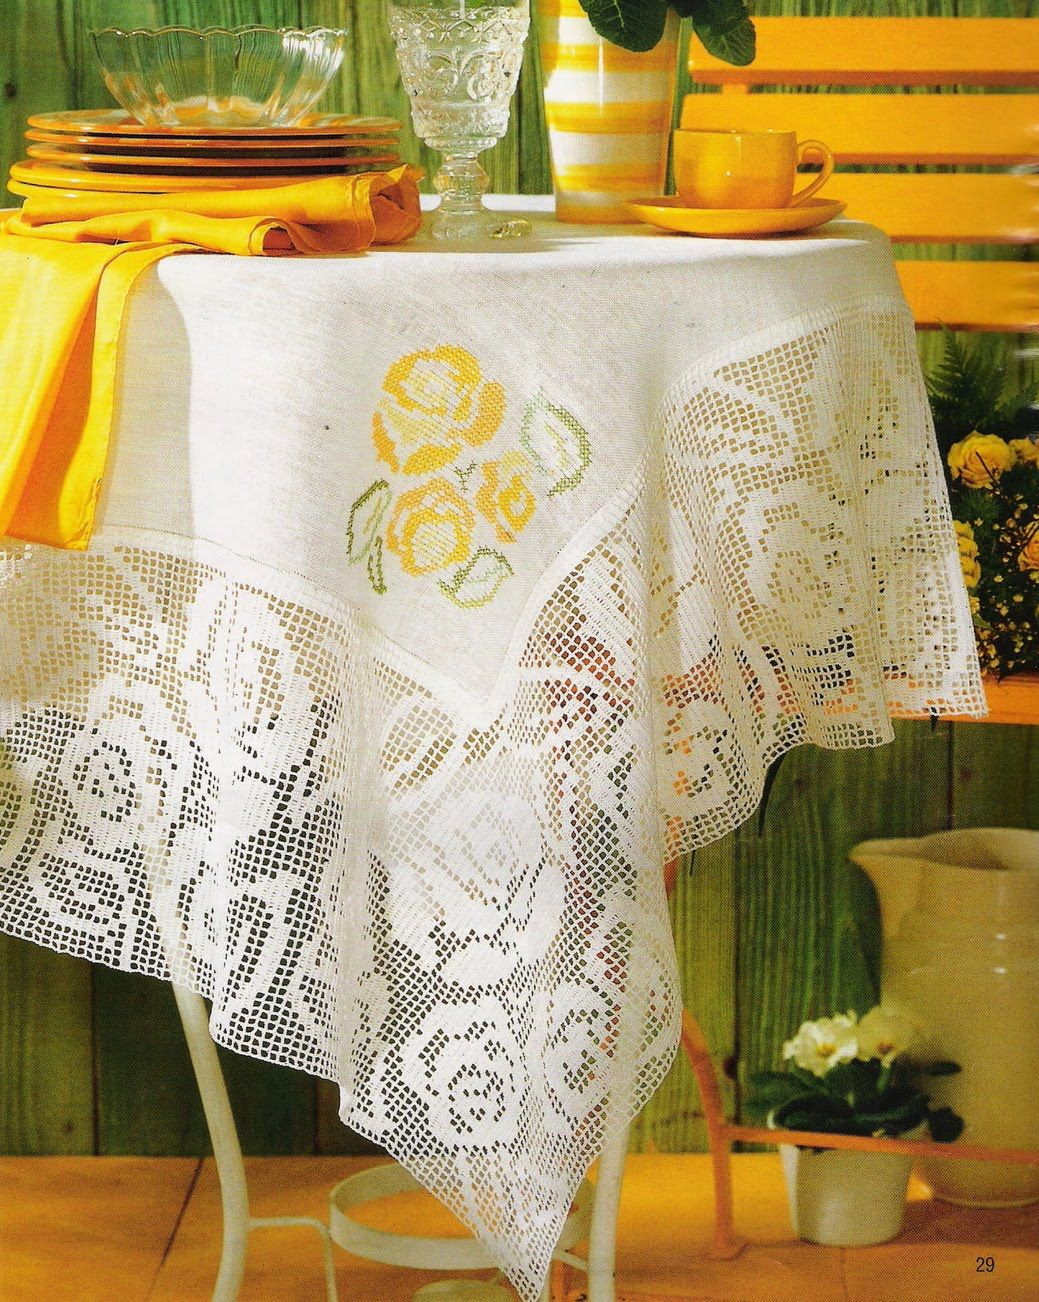 Tricot Decoration Interieur Mantel Toalhas Cortinas Crochet Tablecloth Filet